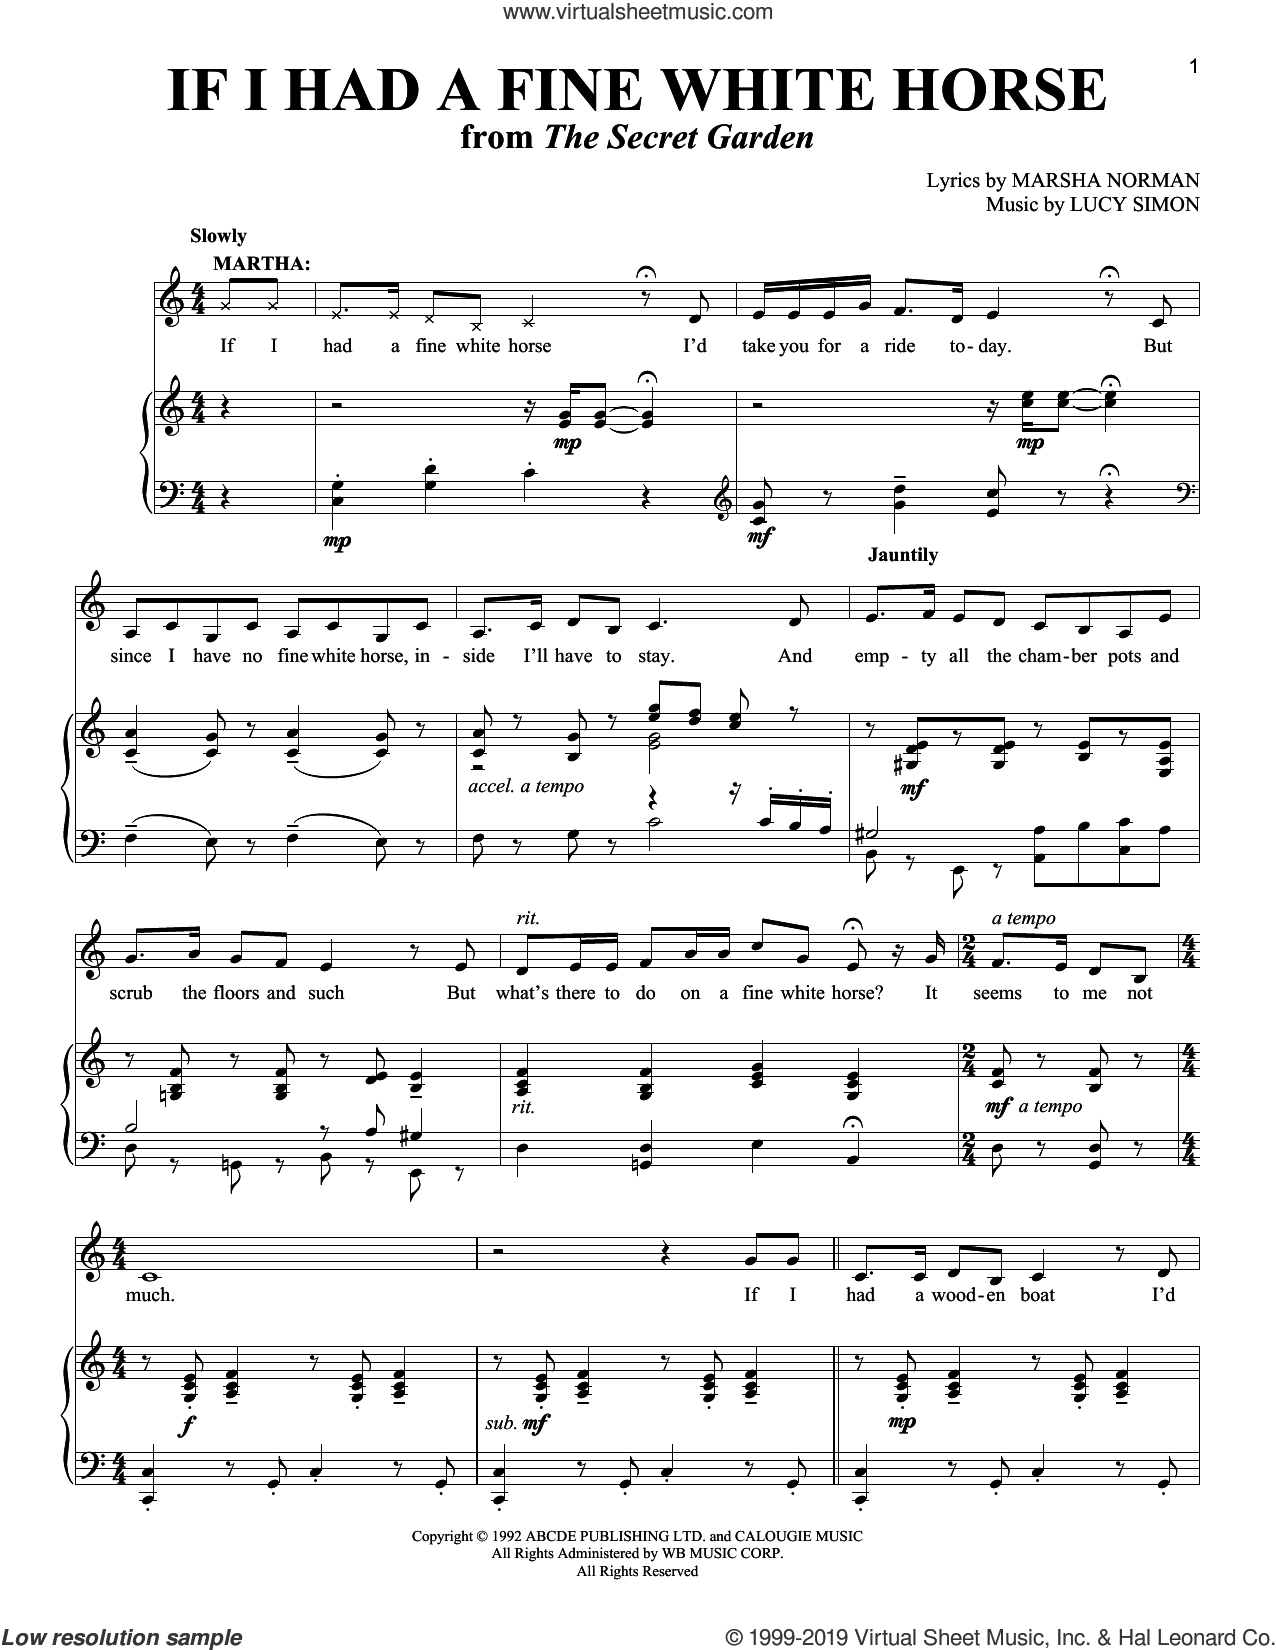 If I Had A Fine White Horse sheet music for voice and piano by Marsha Norman and Lucy Simon, intermediate skill level